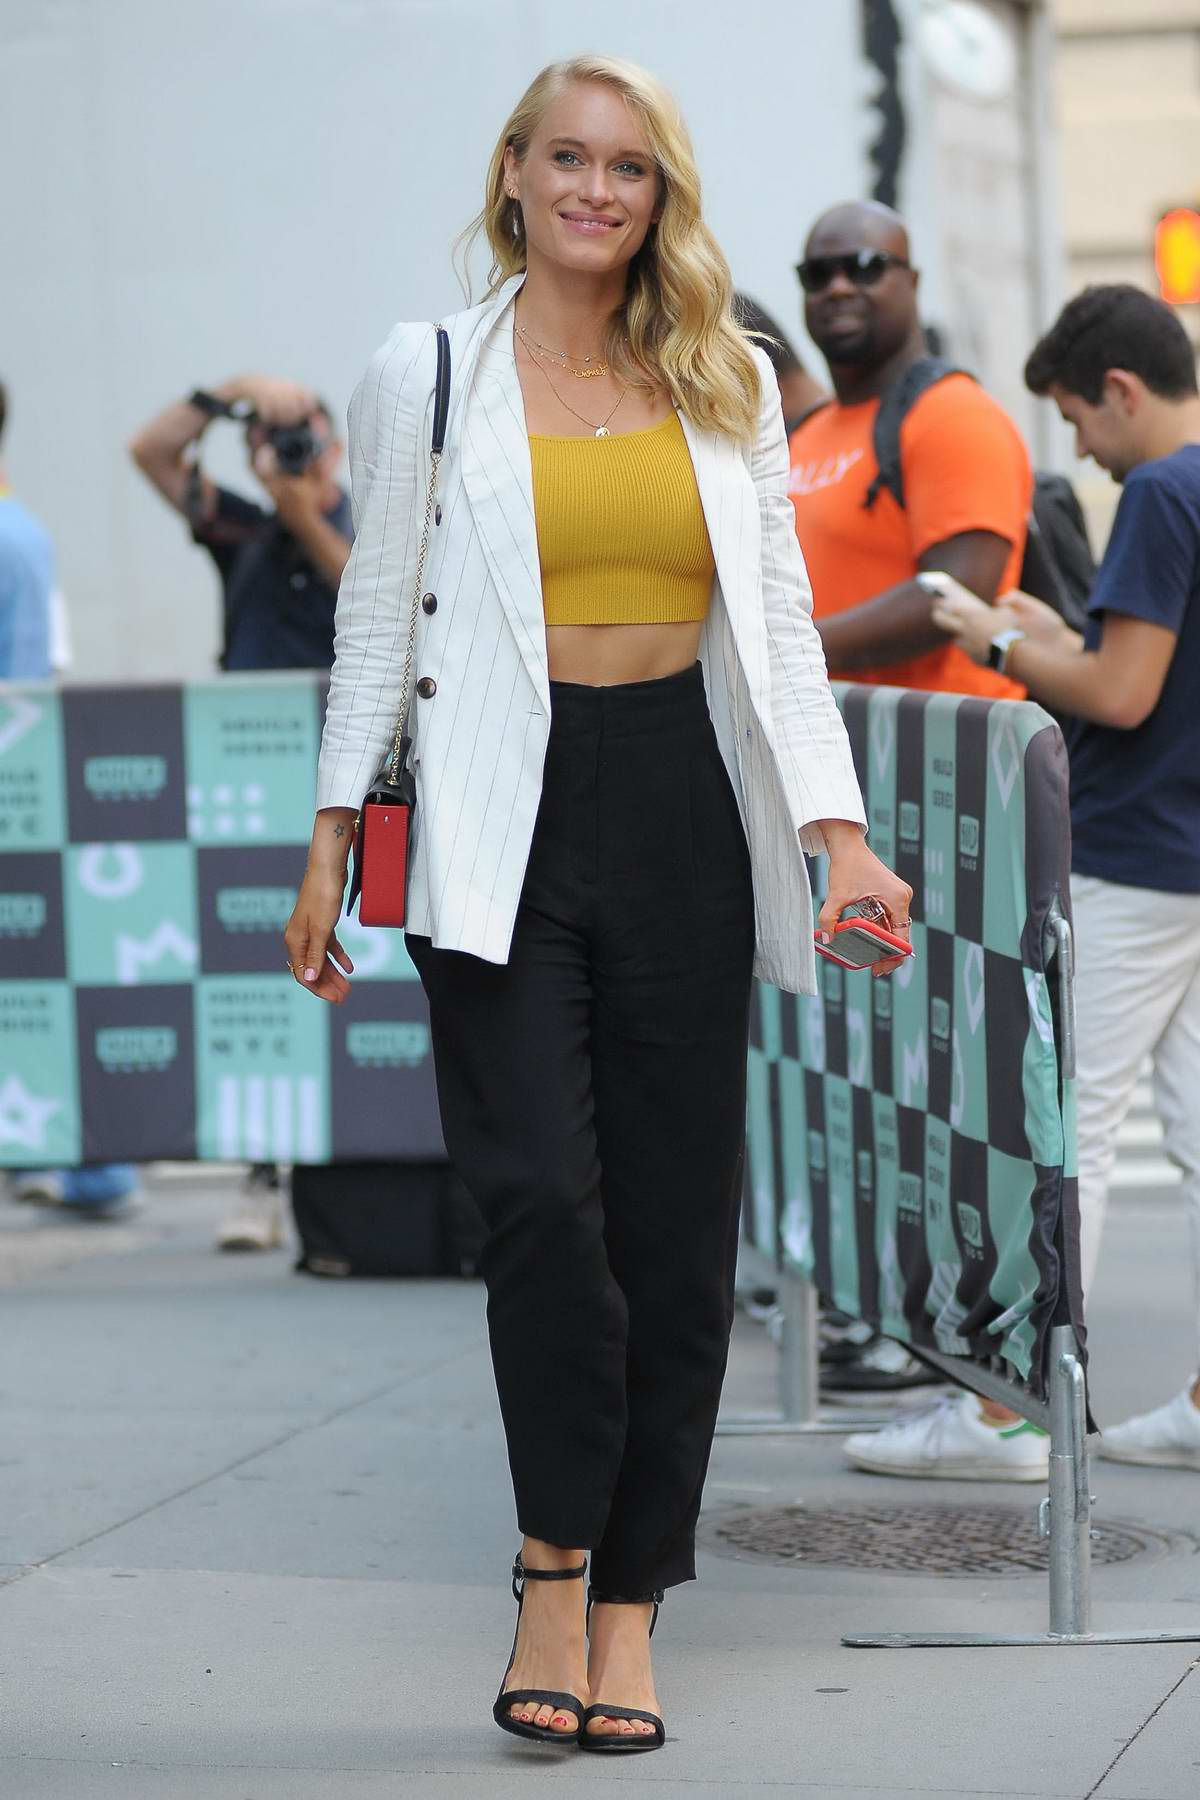 Leven Rambin seen outside at AOL Build Studios in New York City